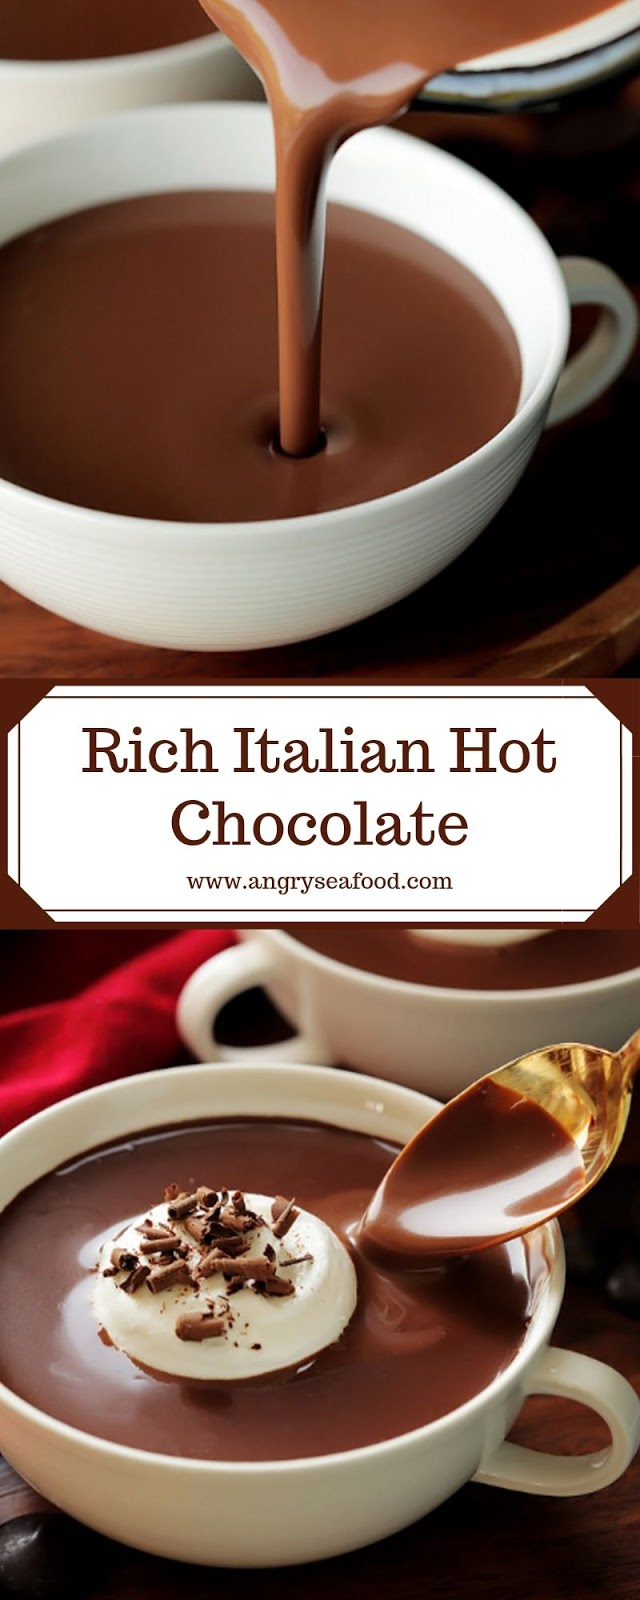 Rich Italian Hot Chocolate